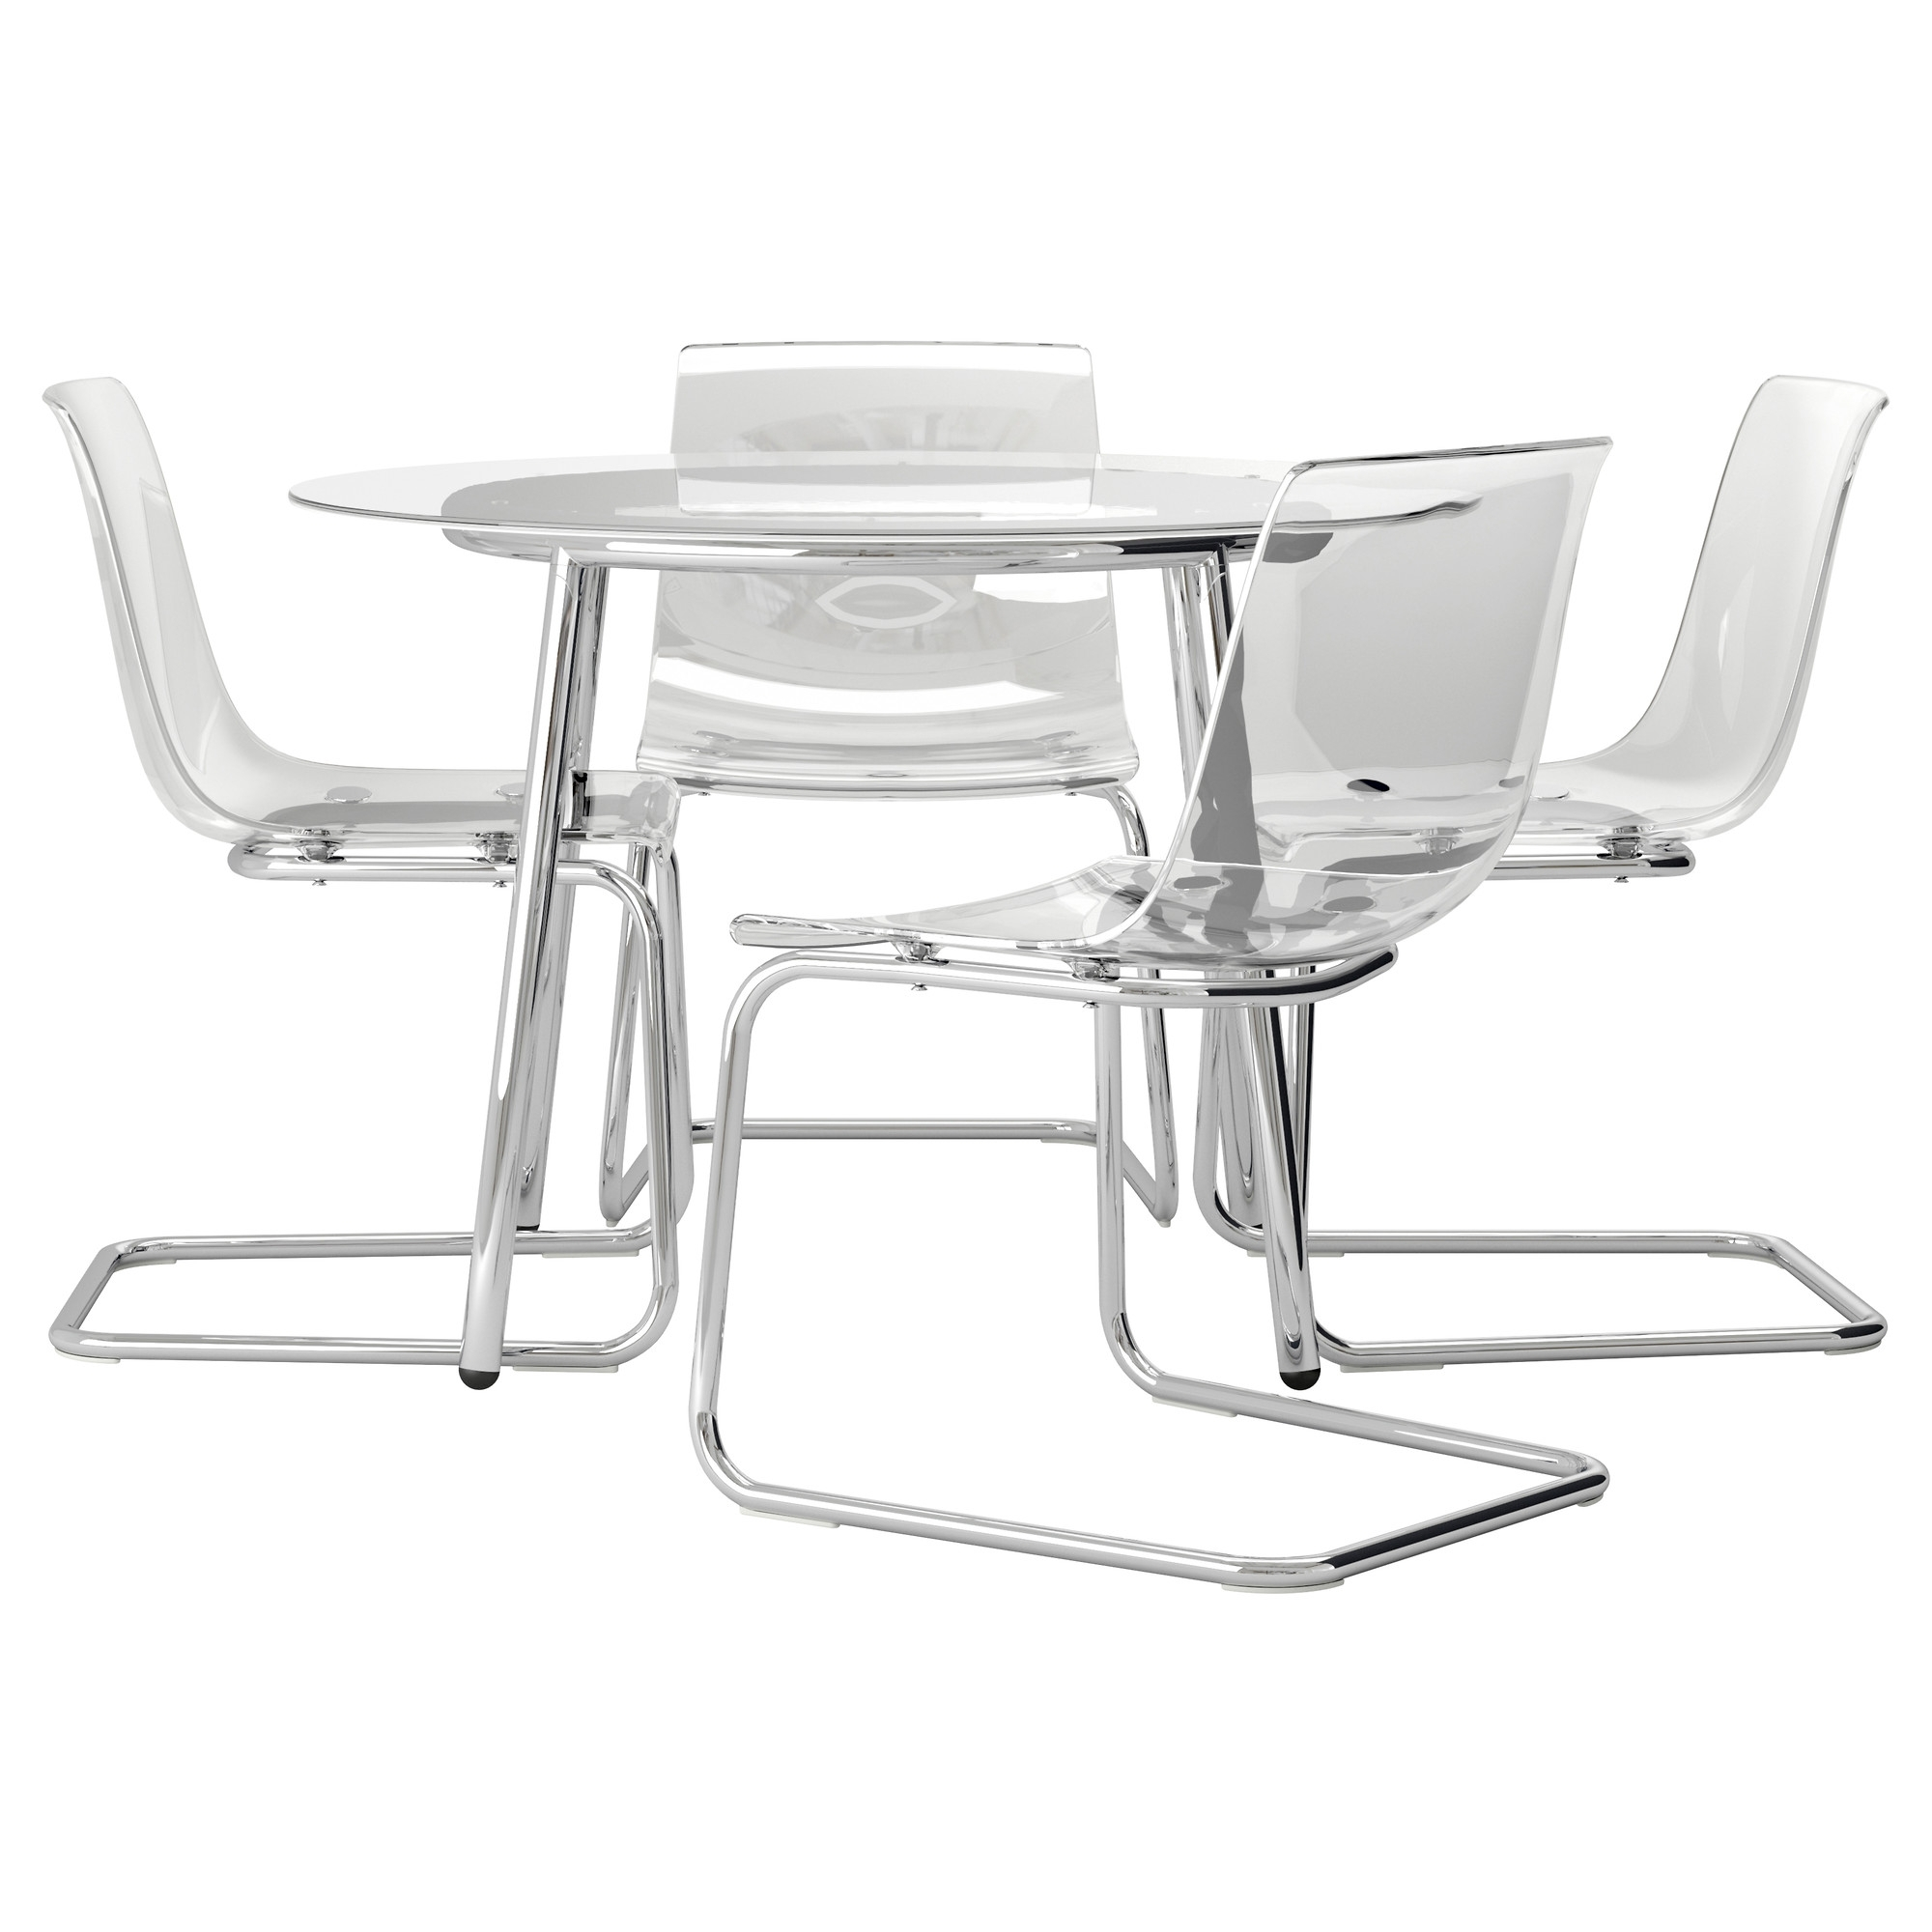 Popular Beautiful Clear Acrylic Dining Chair With Stainless Steel Frame And With Regard To Clear Glass Dining Tables And Chairs (View 19 of 25)